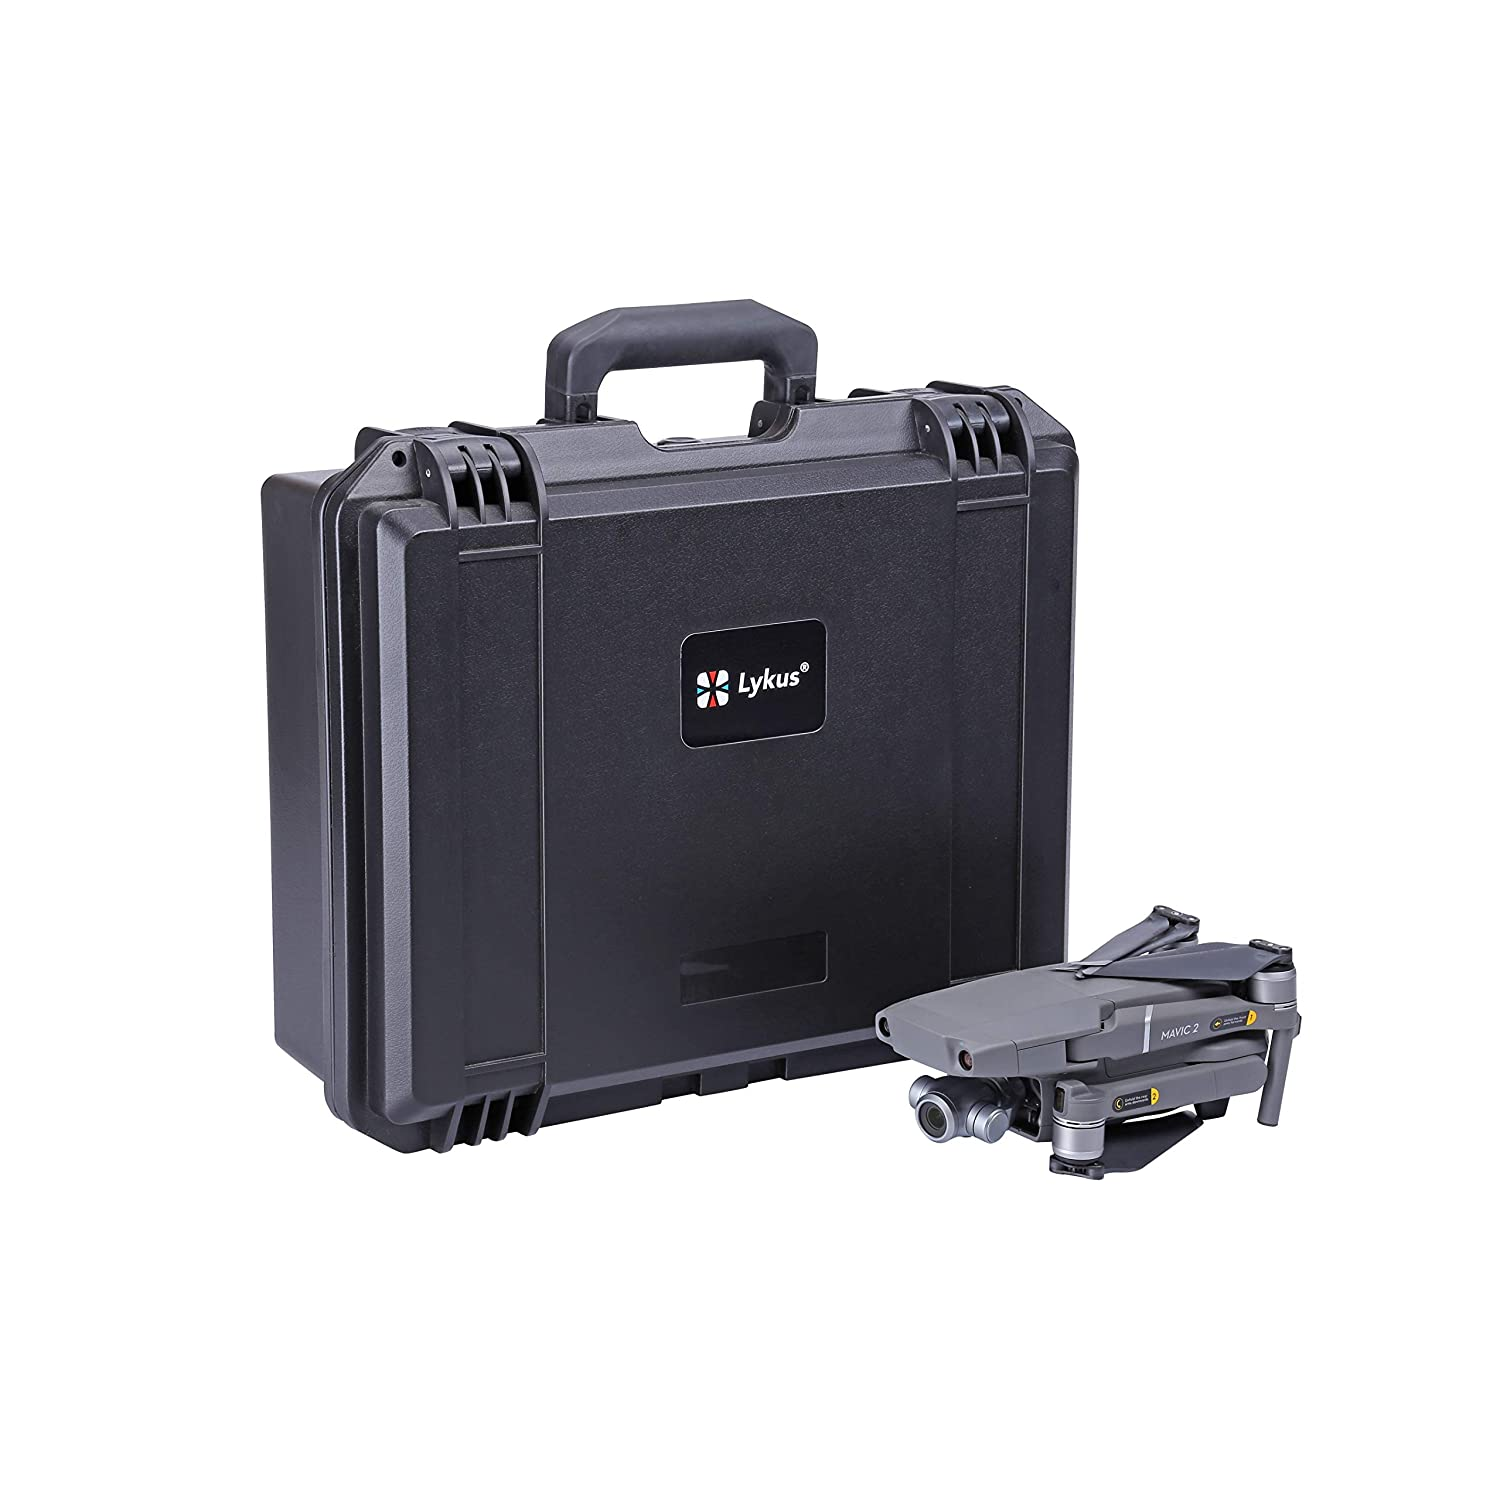 Lykus Titan M100 Waterproof Case for DJI Mavic 2 Pro and Zoom Compact Edition